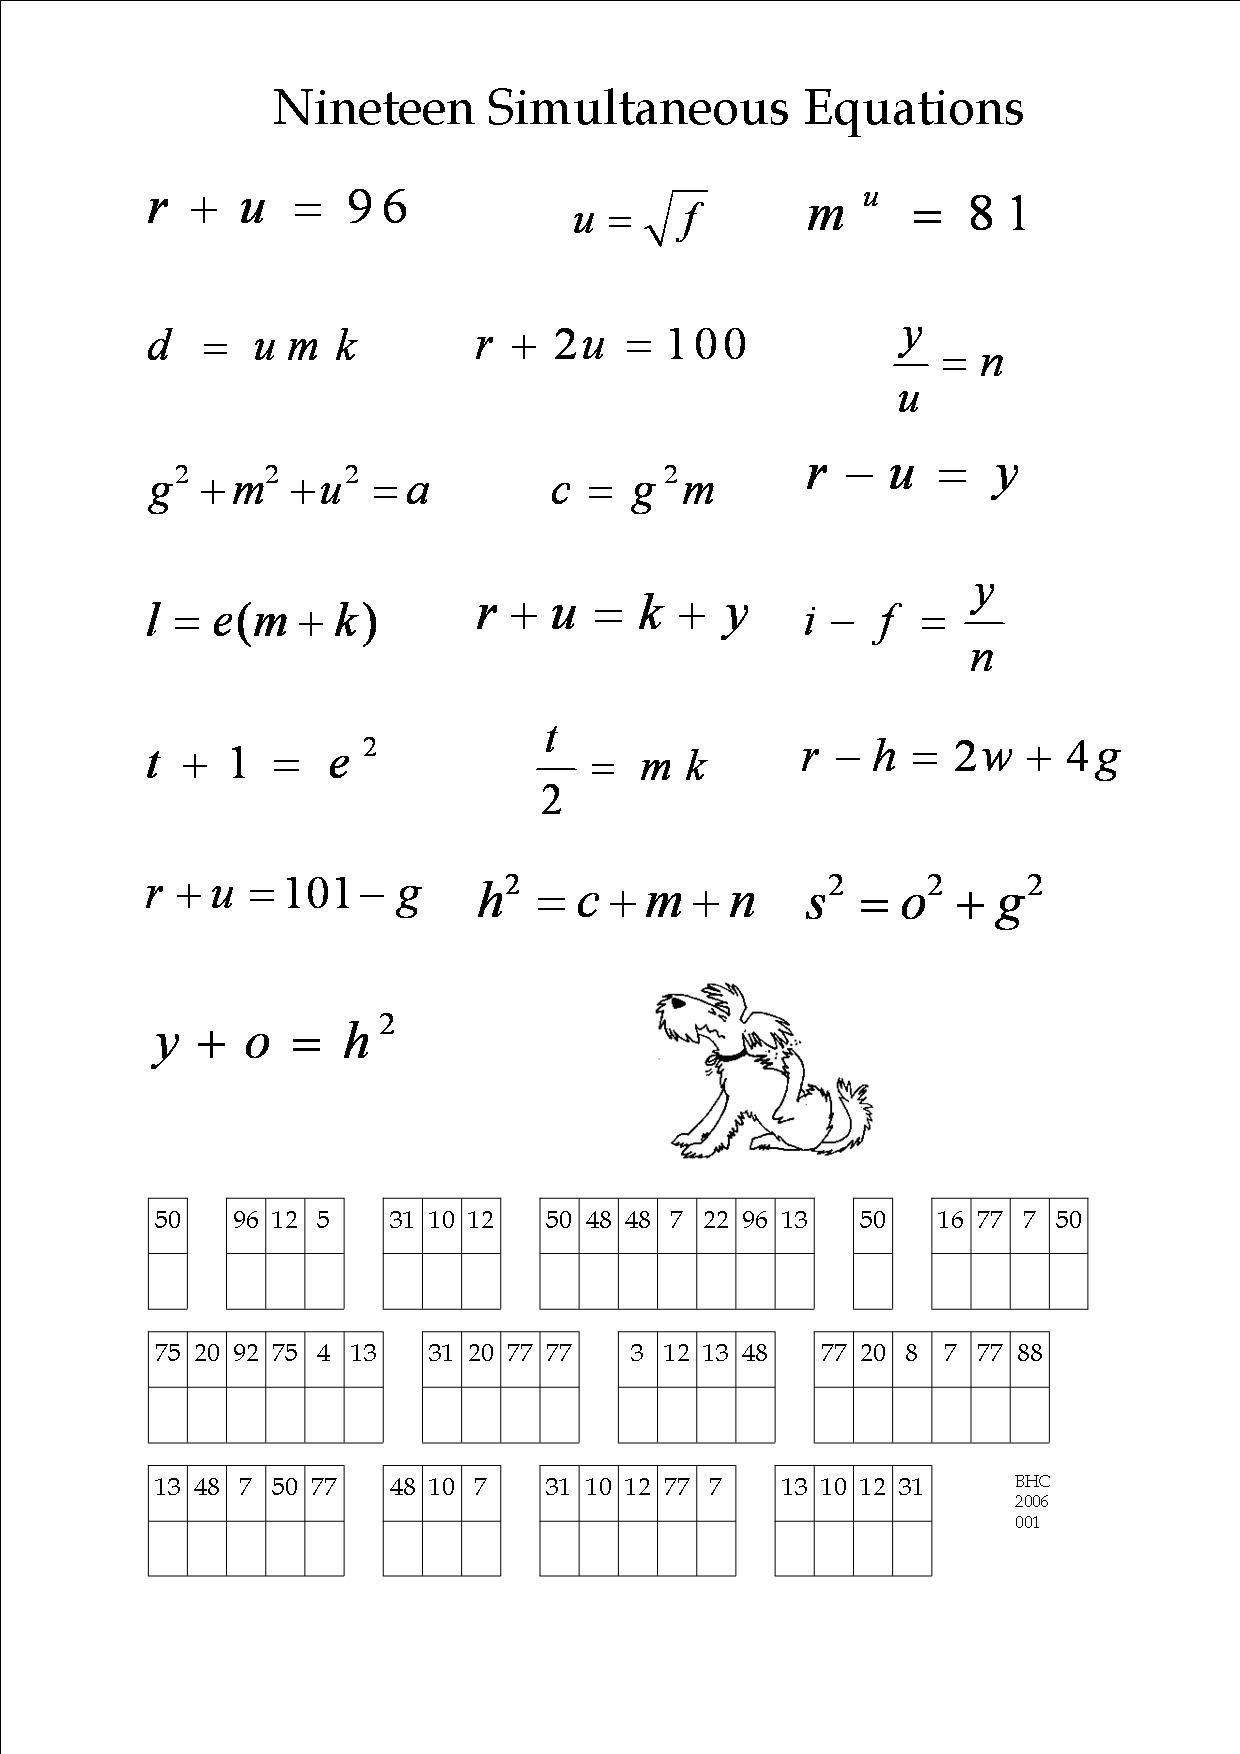 6th Grade Math Puzzle Worksheets Math Puzzle Worksheets Math Expressions Free Printable Math Worksheets Algebraic Expressions